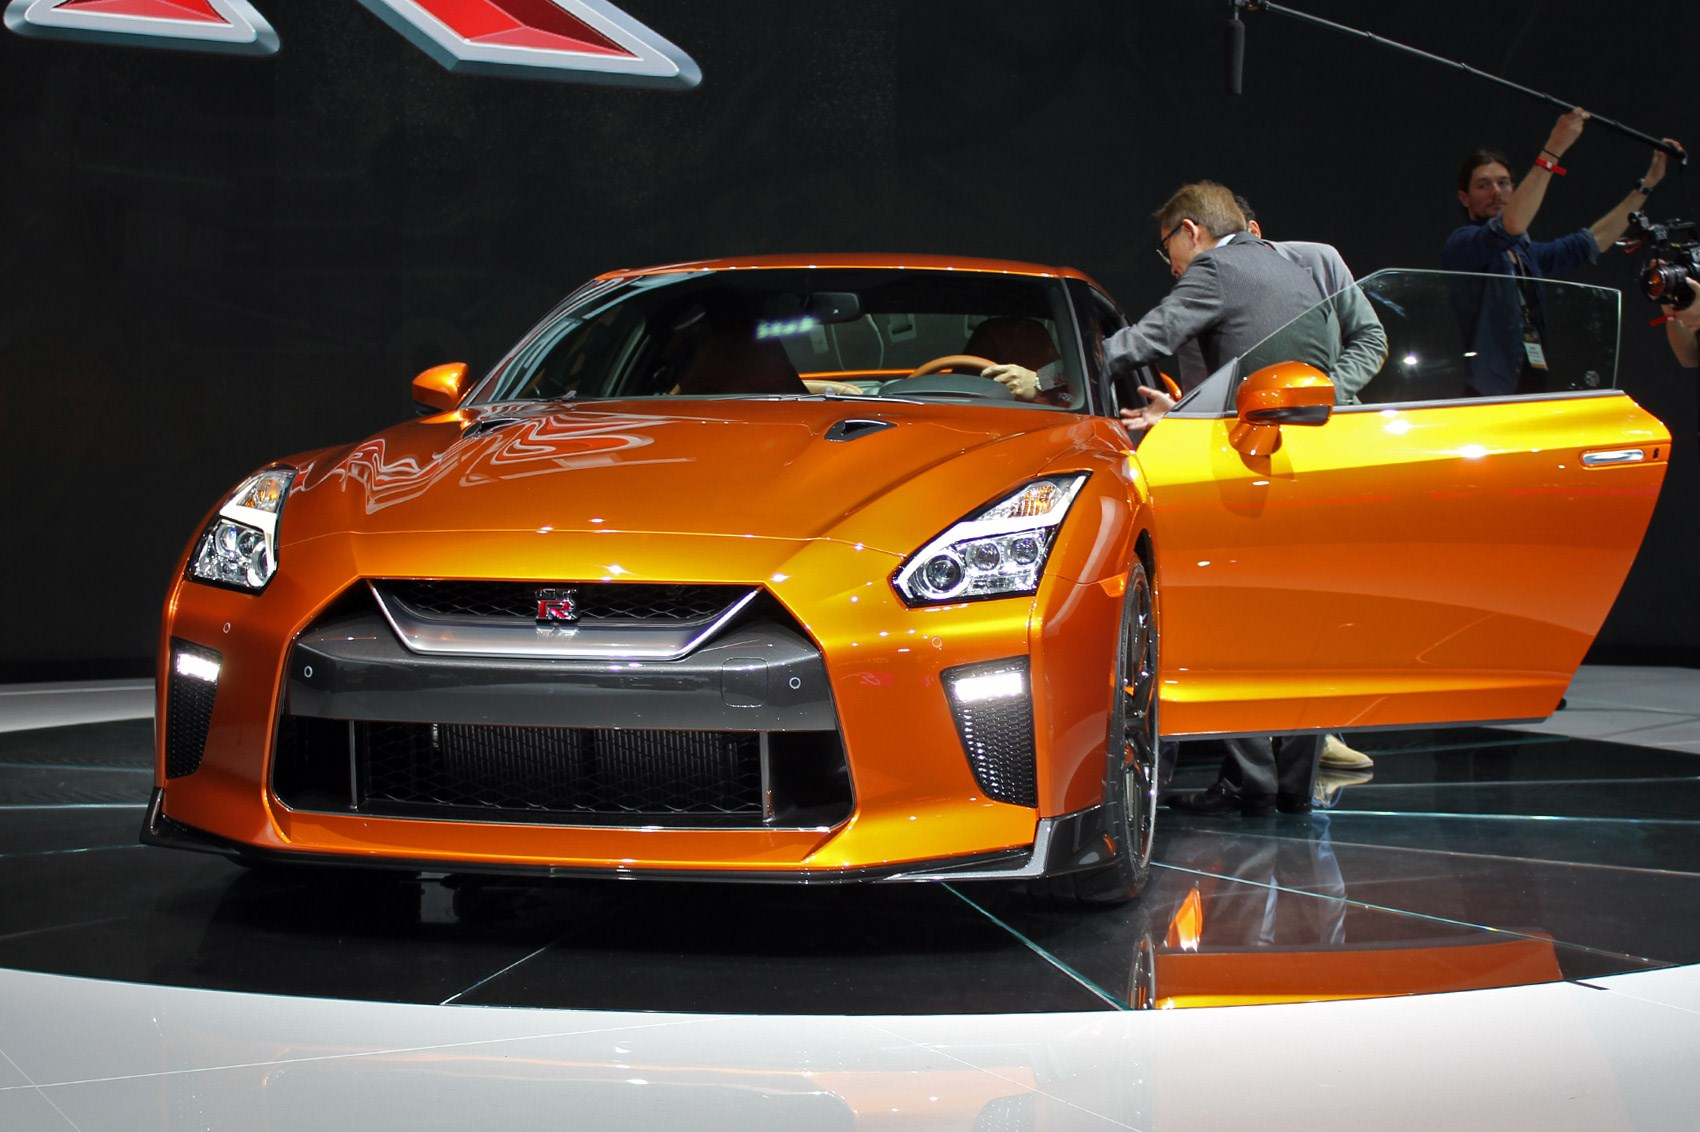 Used Nissan Gt-r for Sale Awesome Meet the New even Brawnier 2017 Nissan Gt R Pricing and